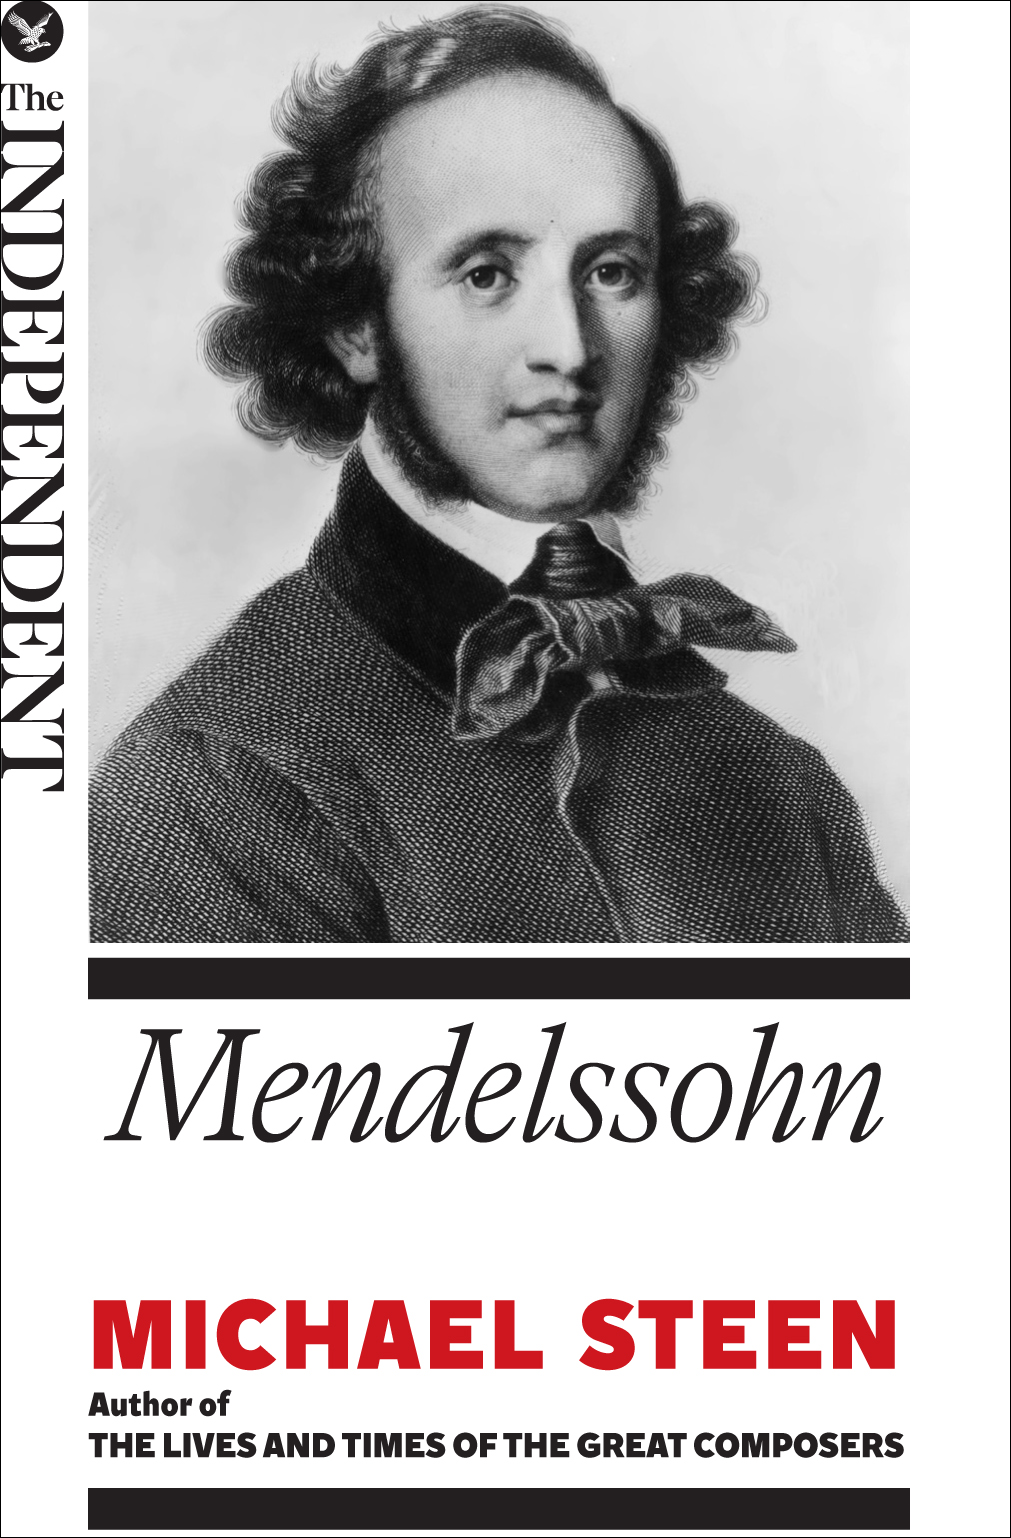 Mendelssohn: The Great Composers